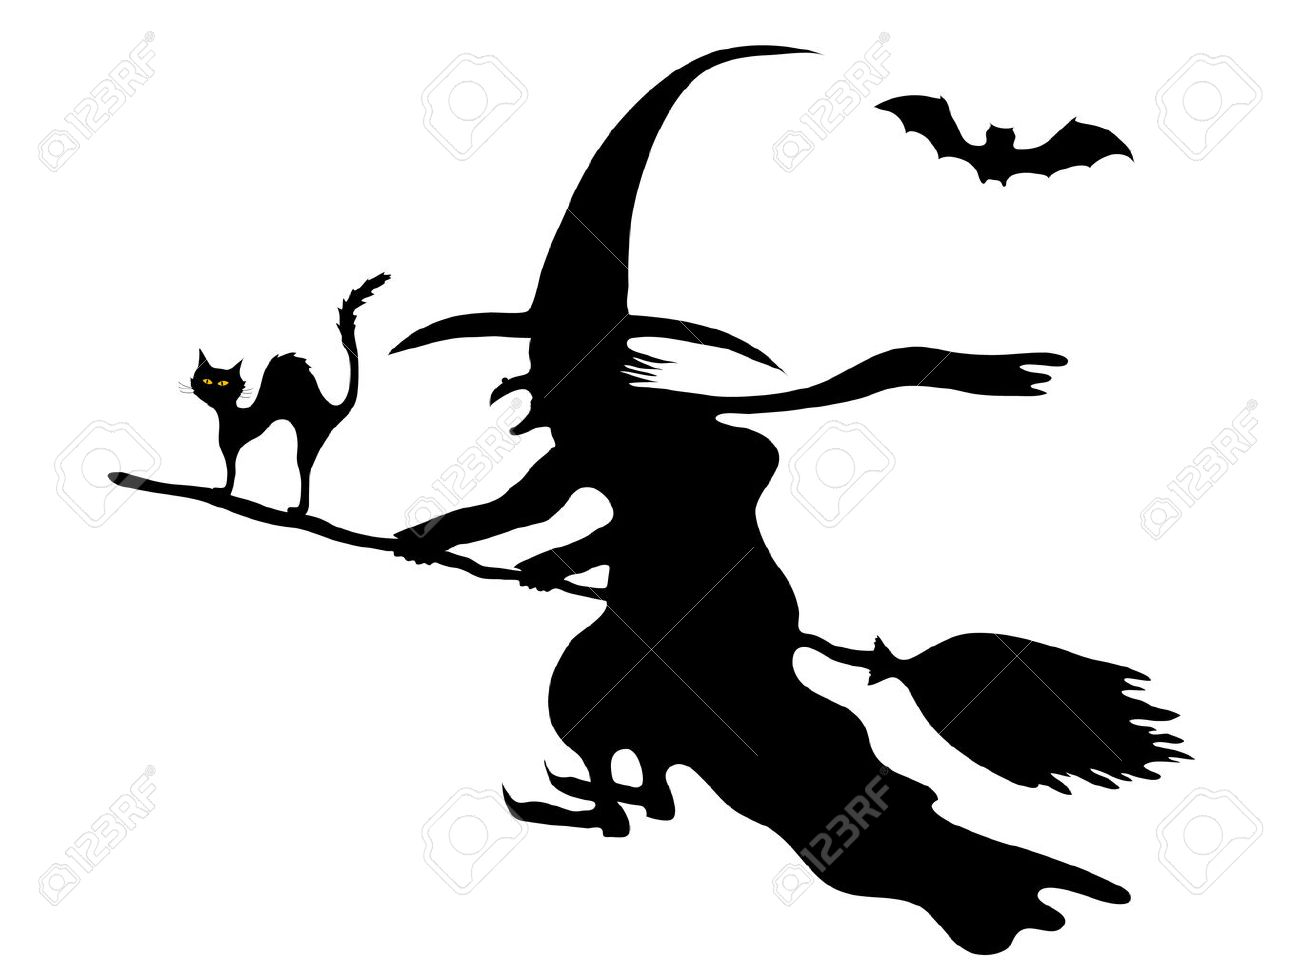 Silhouette of the witch on her broom - 7801028